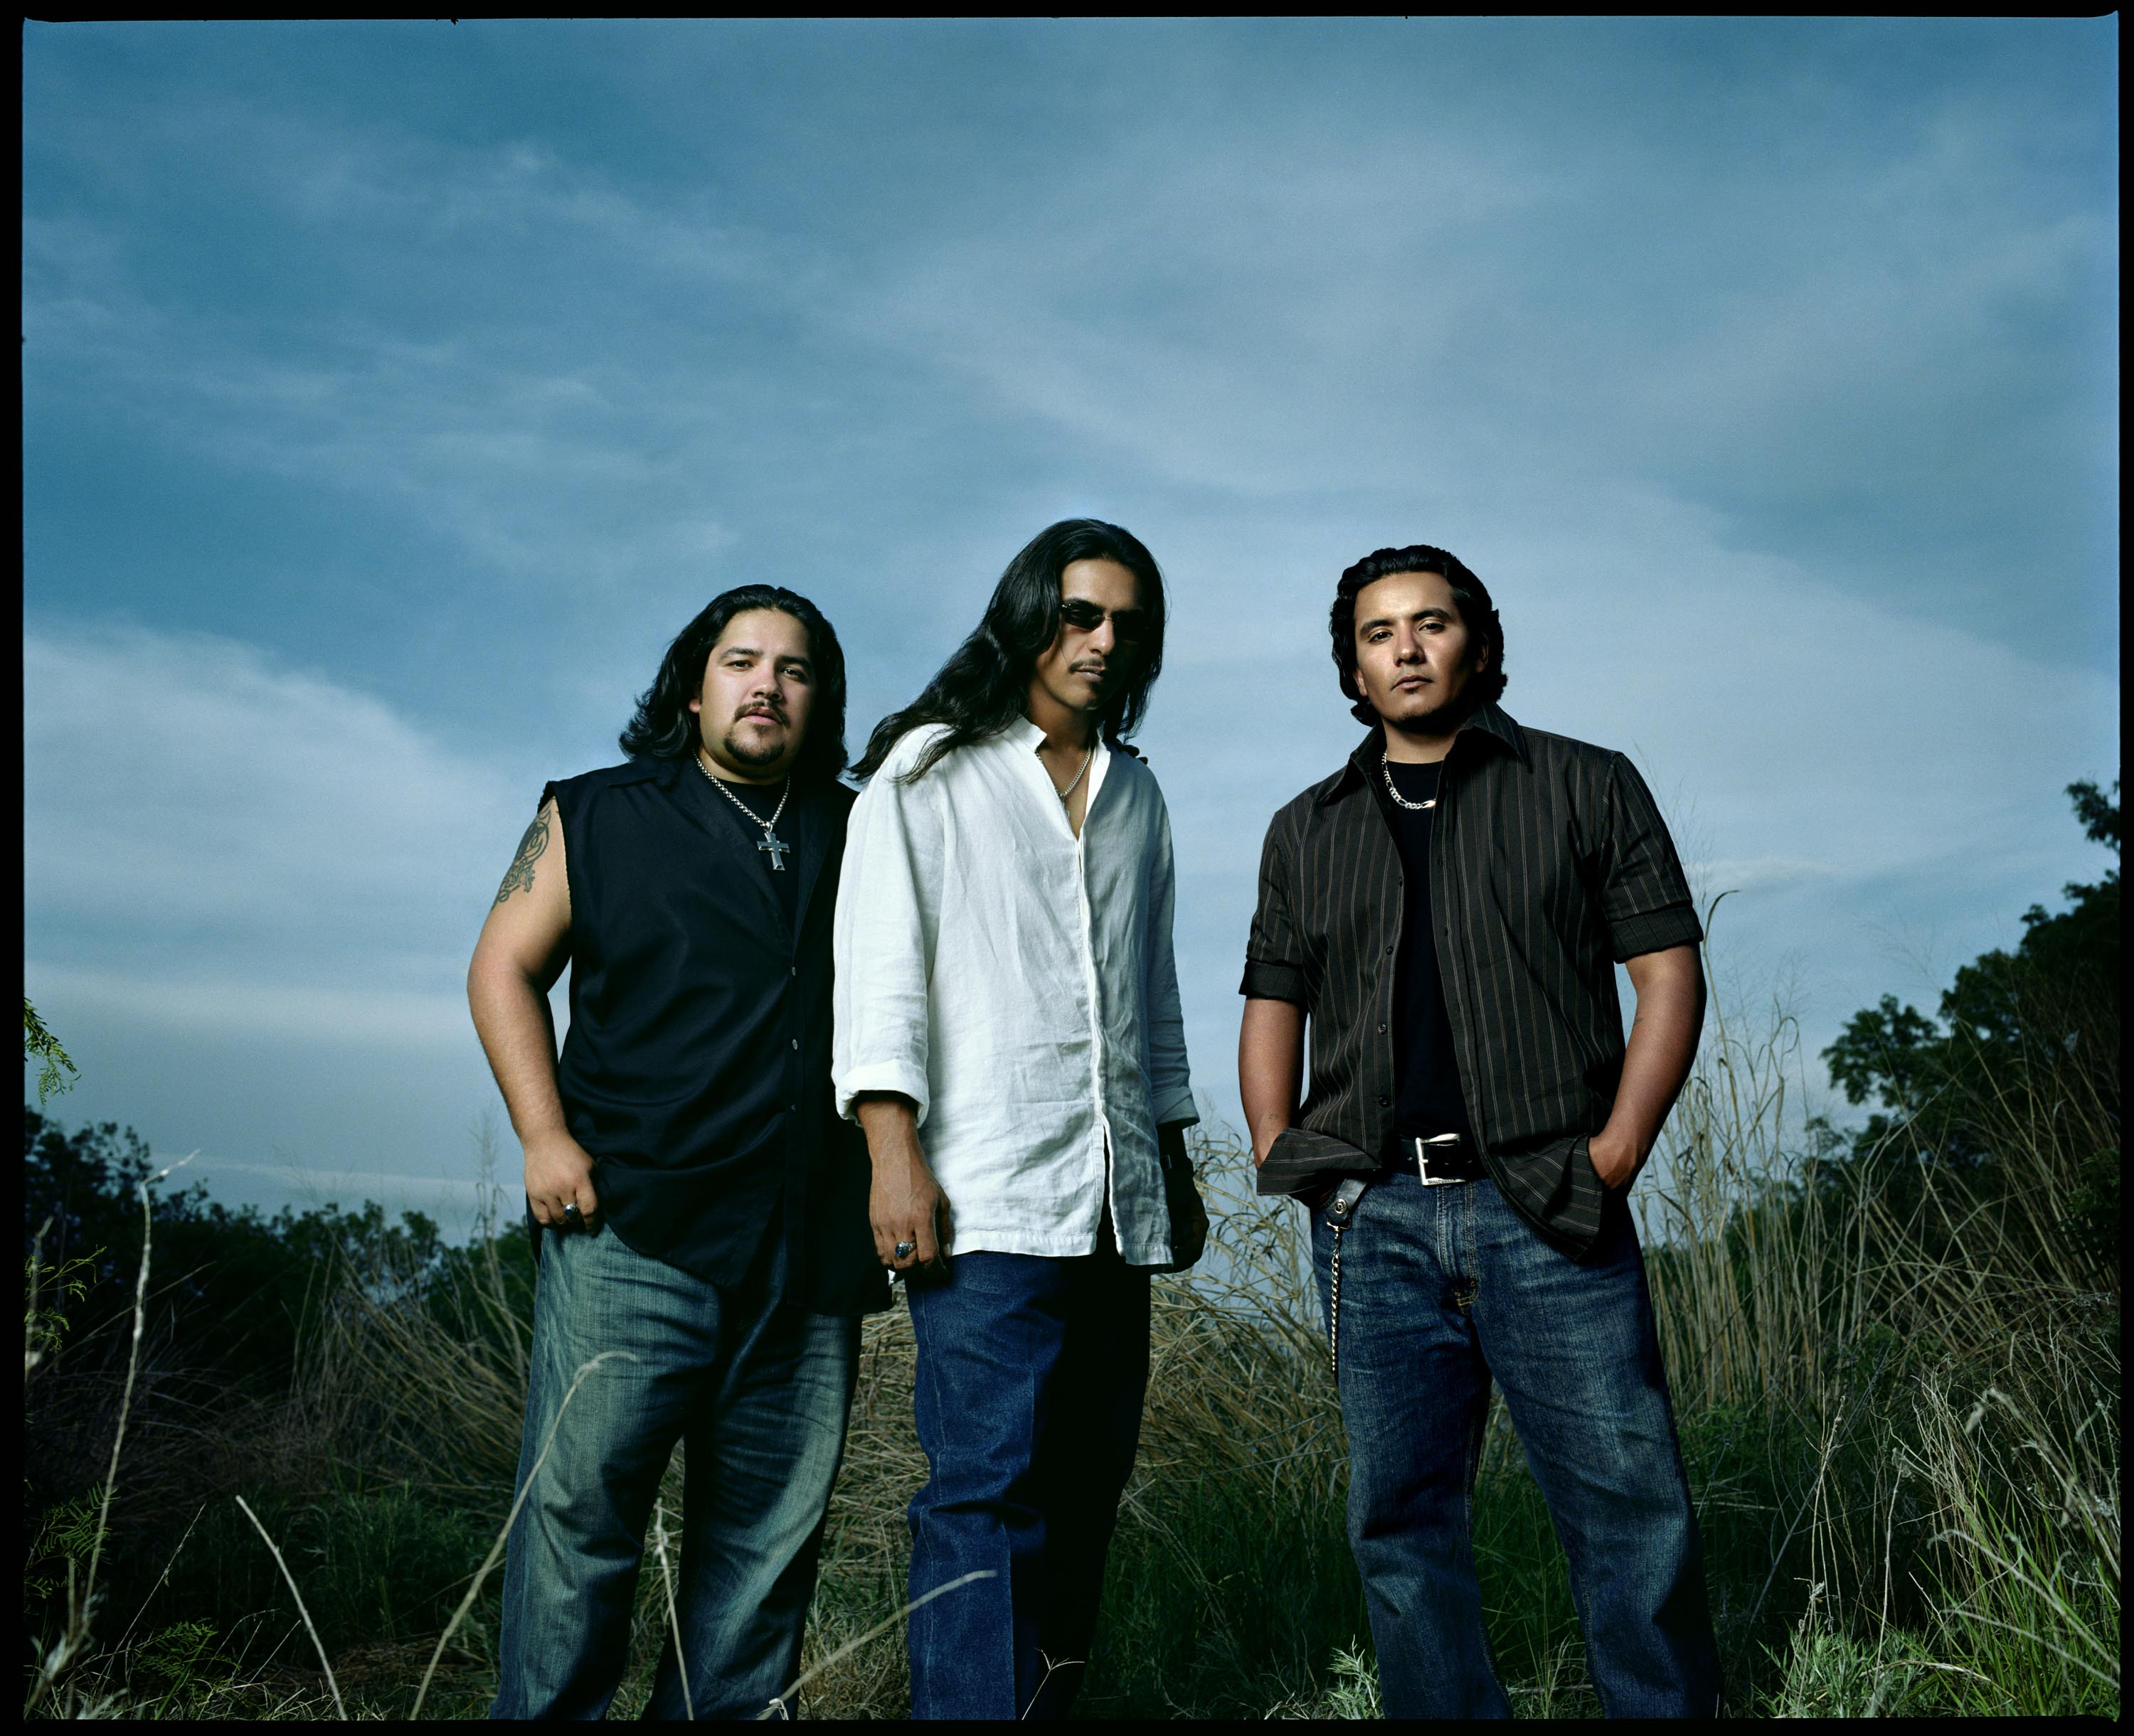 Los lonely boys with mike milligan and steam shovel